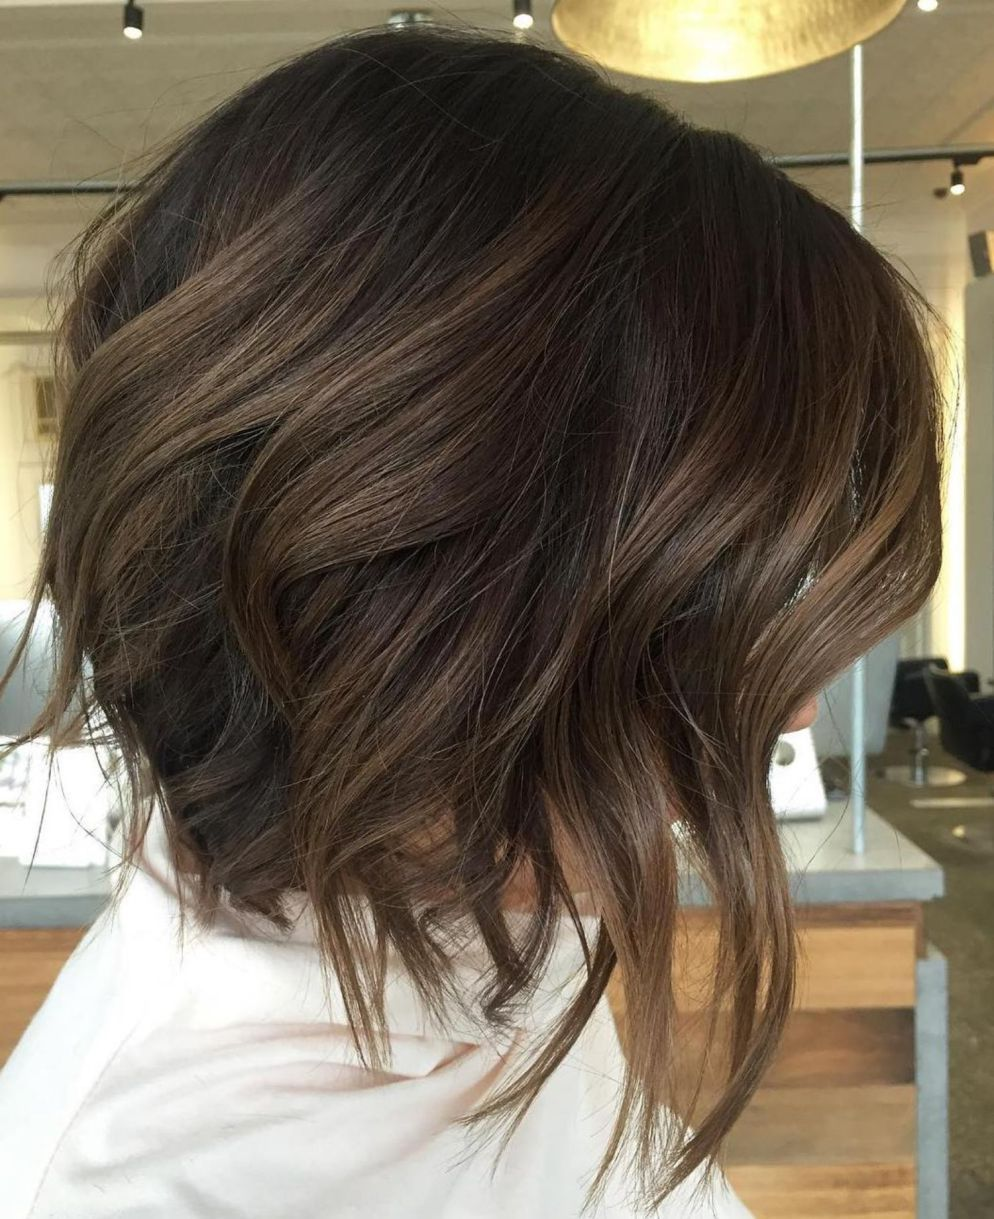 most beneficial haircuts for thick hair of any length hair and